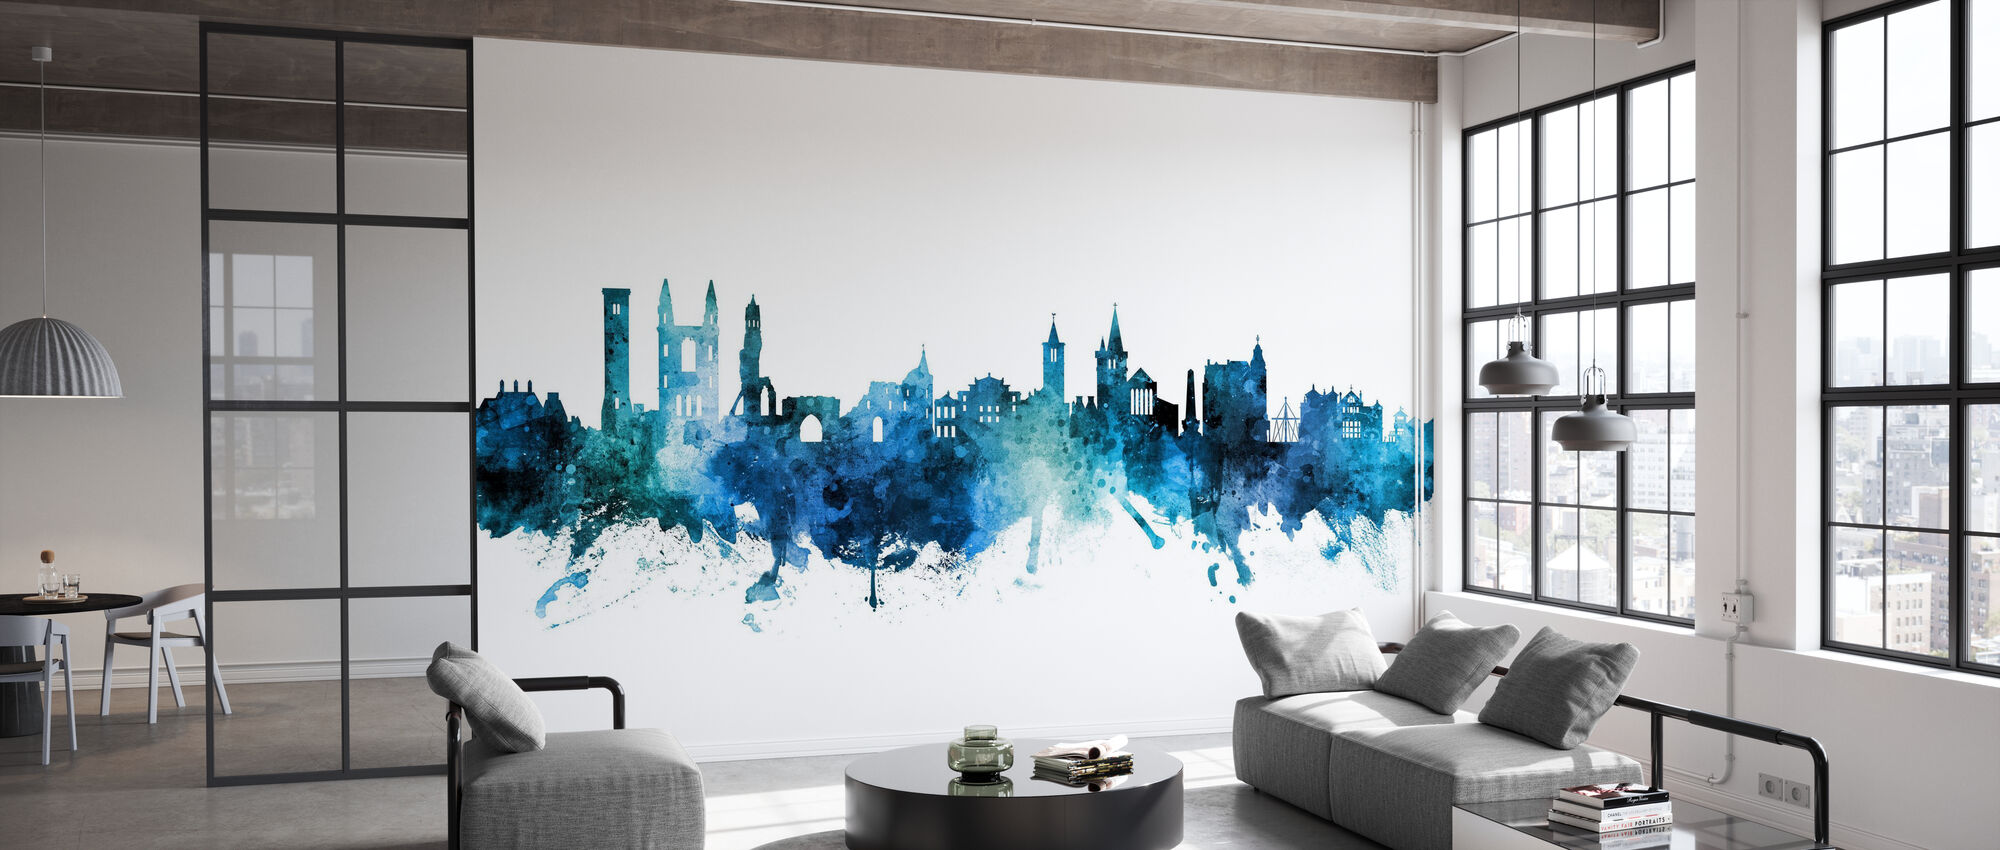 St Andrews Scotland Skyline - Wallpaper - Office